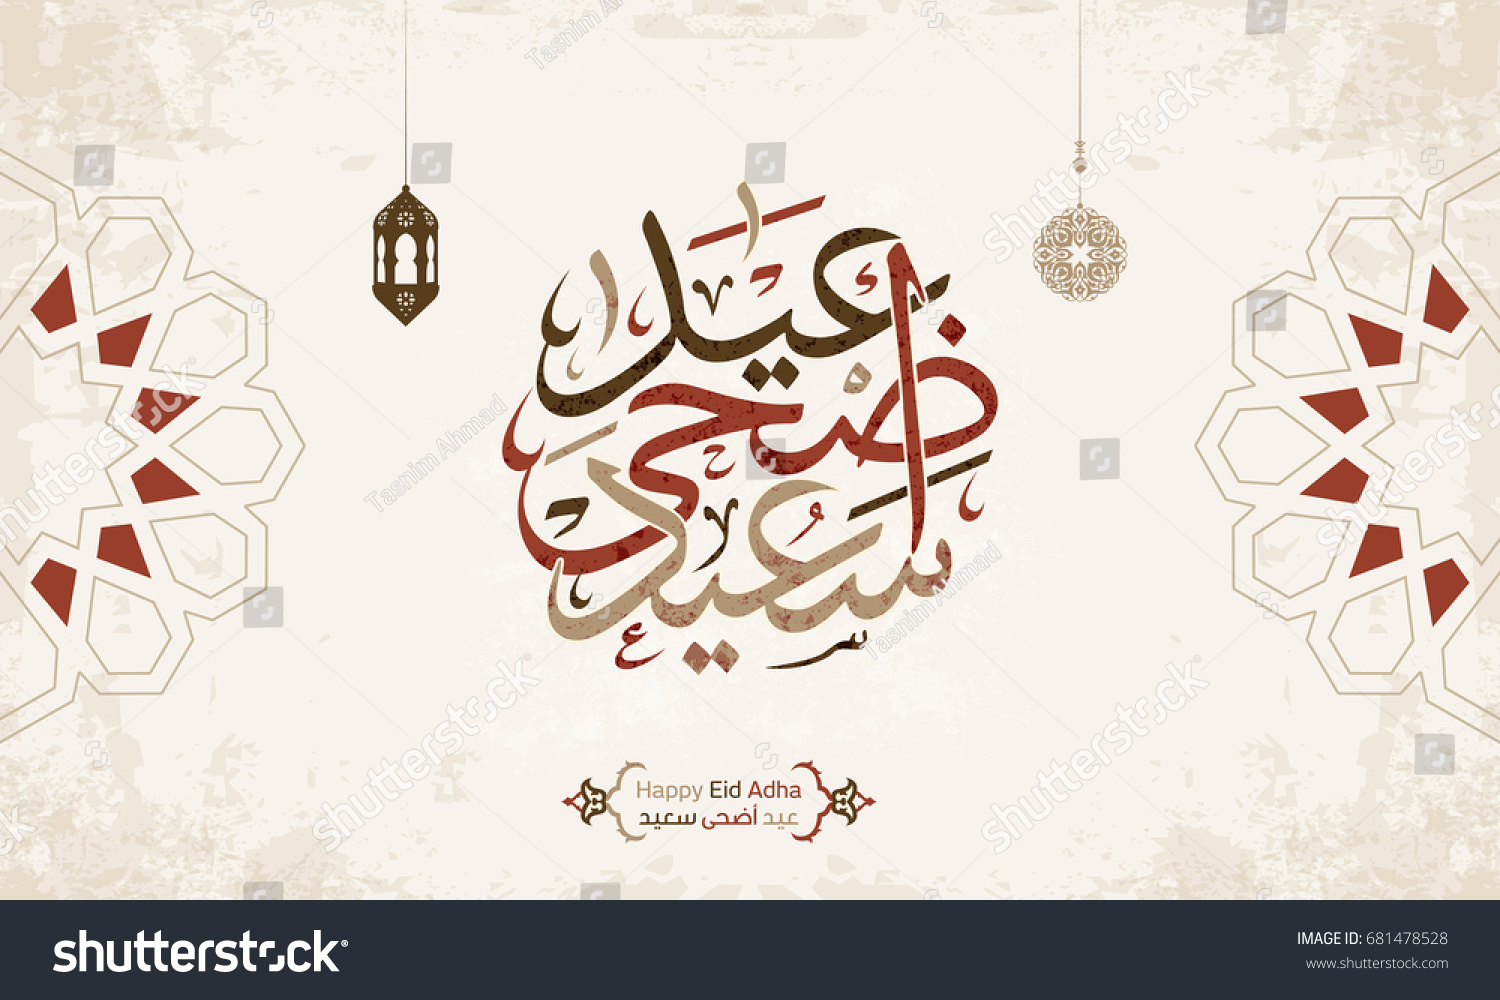 Vector of Arabic Calligraphy text of Eid Al Adha Mubarak for the celebration of Muslim community festival #681478528